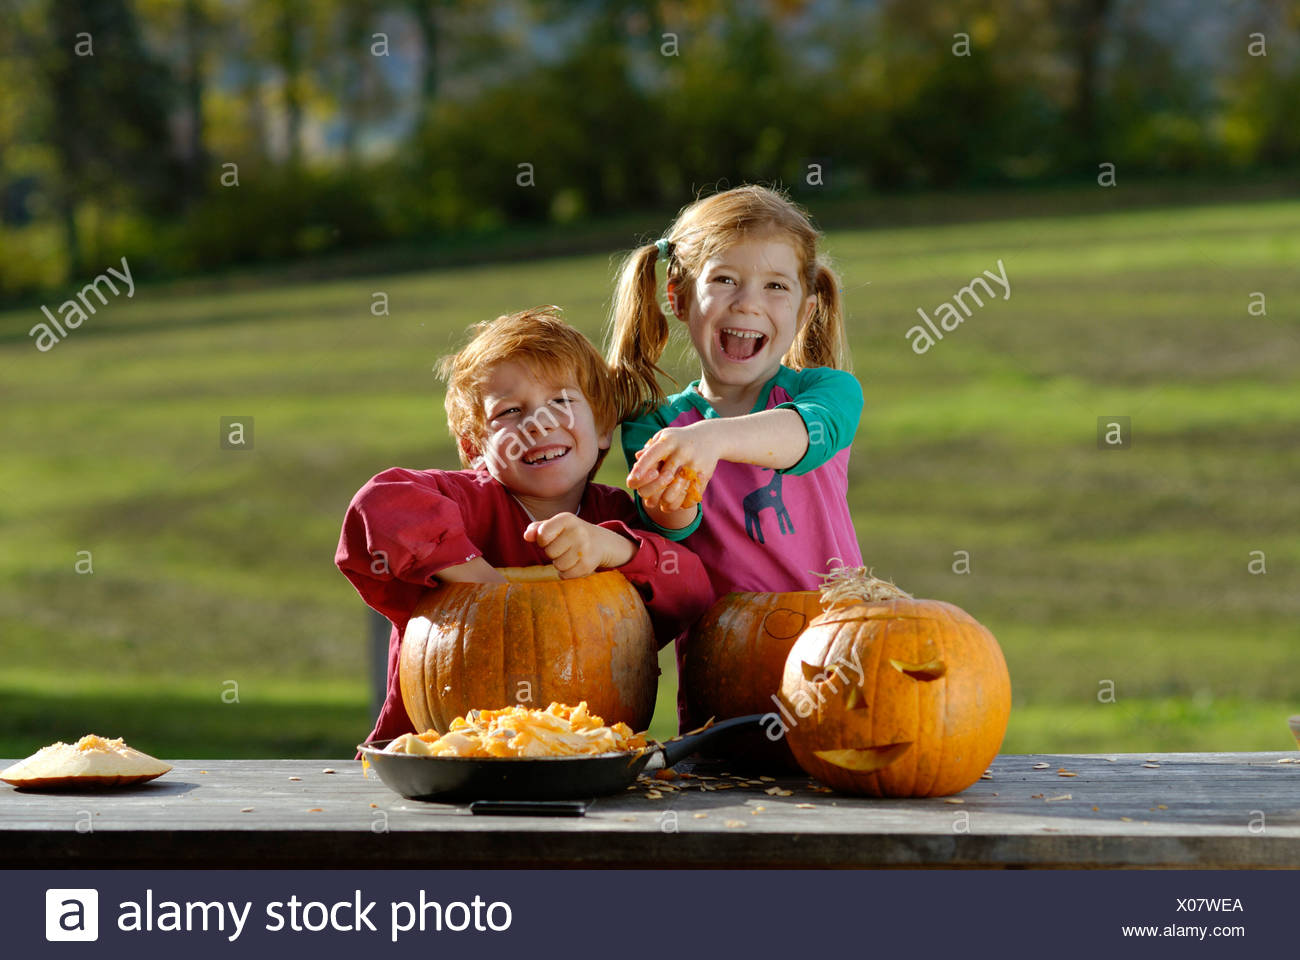 Two children carving pumpkins for Halloween decoration - Stock Image